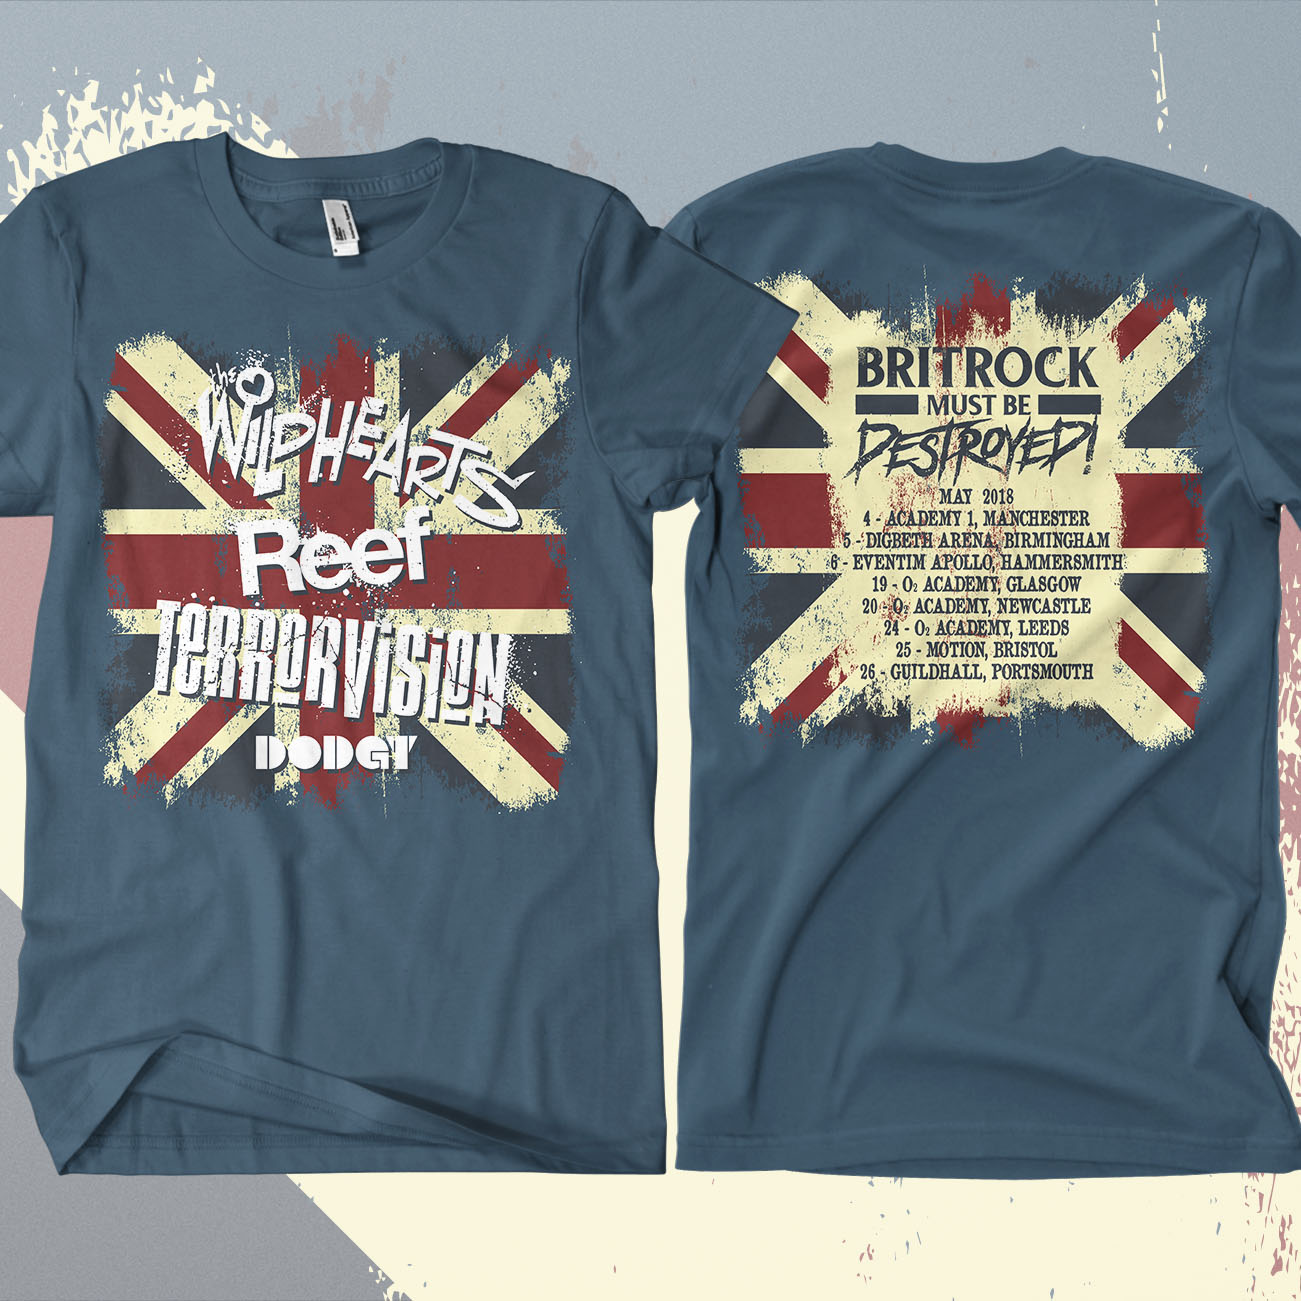 The Wildhearts - 'Britrock Must Be Destroyed' Blue UK Tour T-Shirt - The Wildhearts